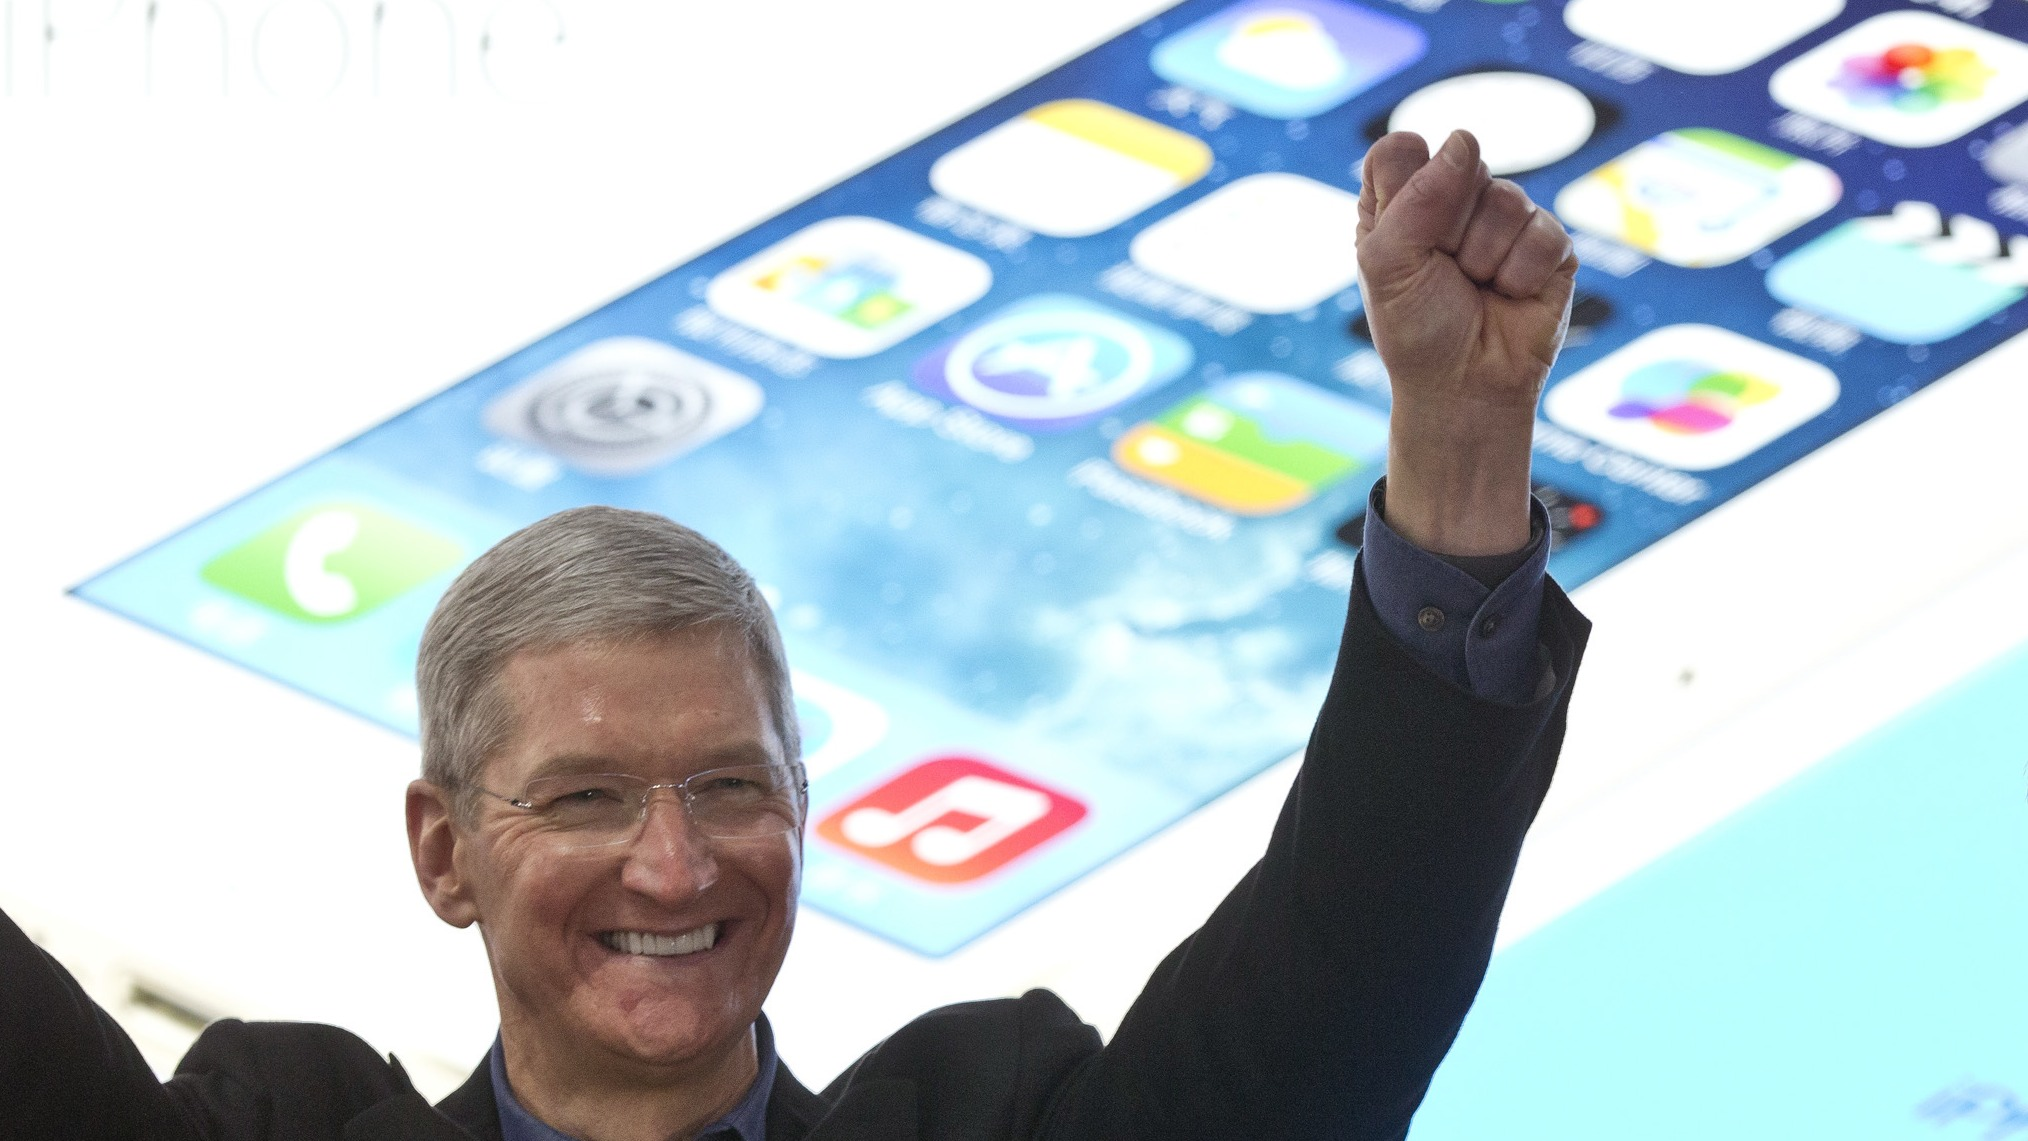 Apple's CEO Tim Cook, left, gestures with China Mobile's chairman Xi Guohua, right, during a promotional event that marks the opening day of sales of China Mobile's 4G iPhone 5s and iPhone 5c at a shop of the world's largest mobile phone operator in Beijing, China, Friday, Jan. 17, 2014. (AP Photo/Alexander F. Yuan)